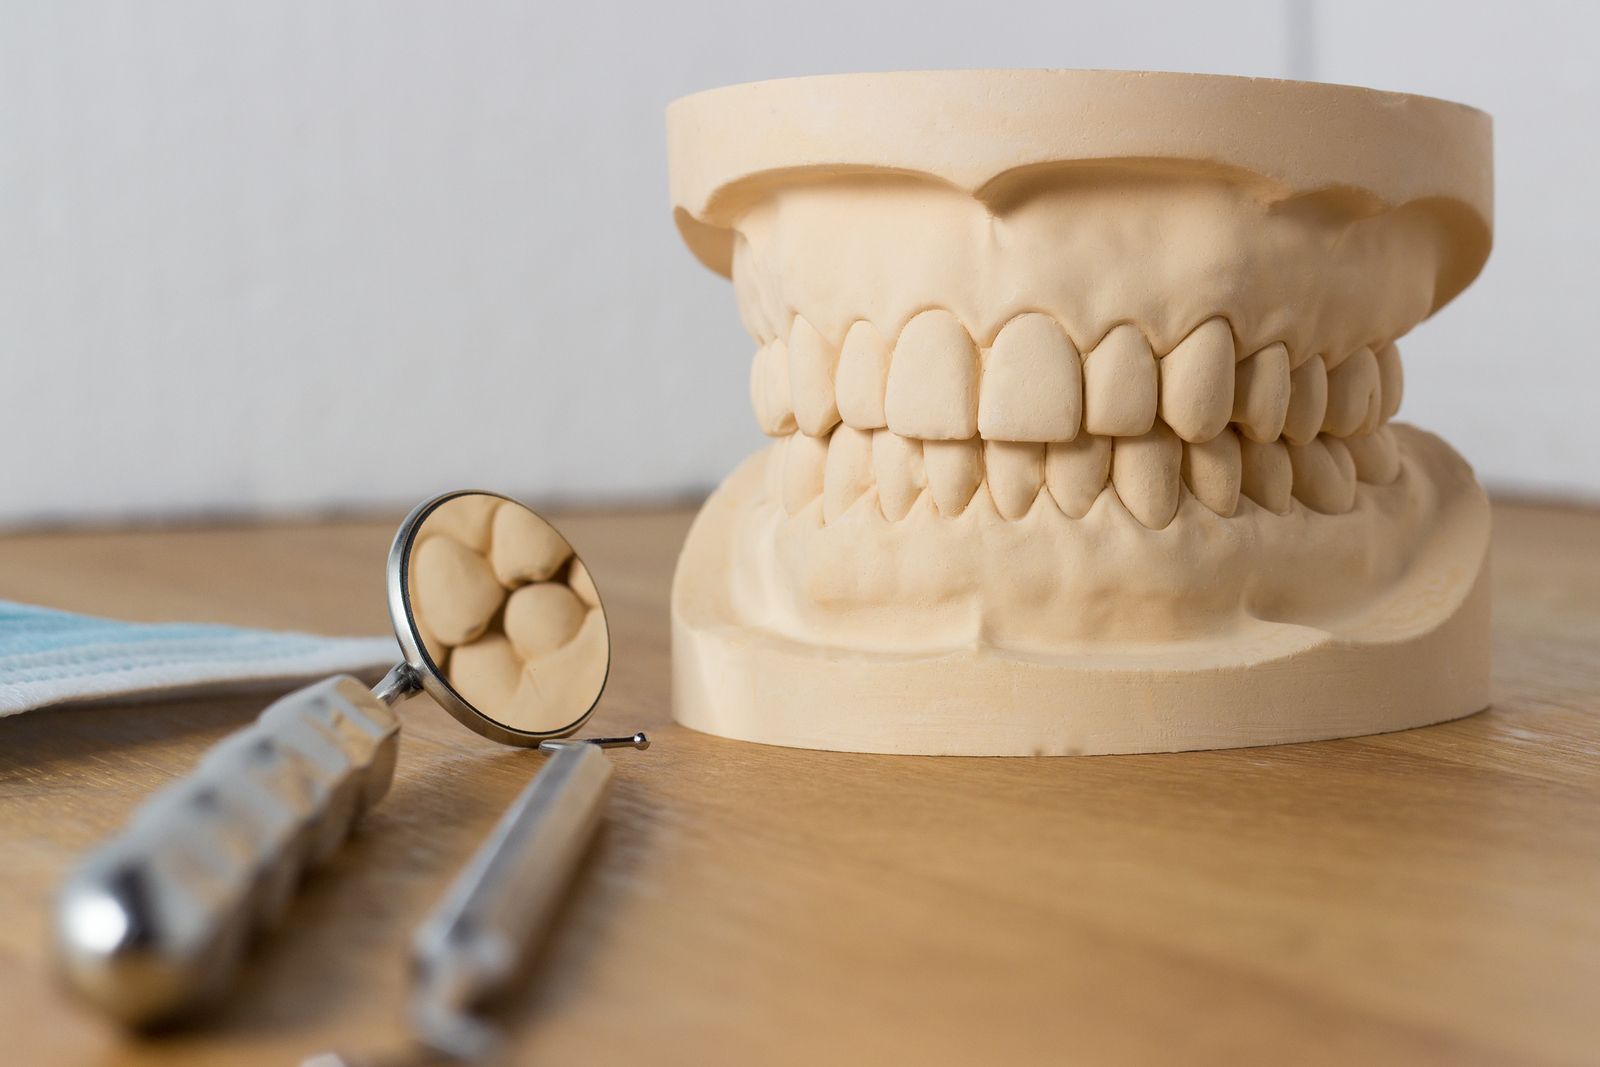 Dental Mold With Dental Tools